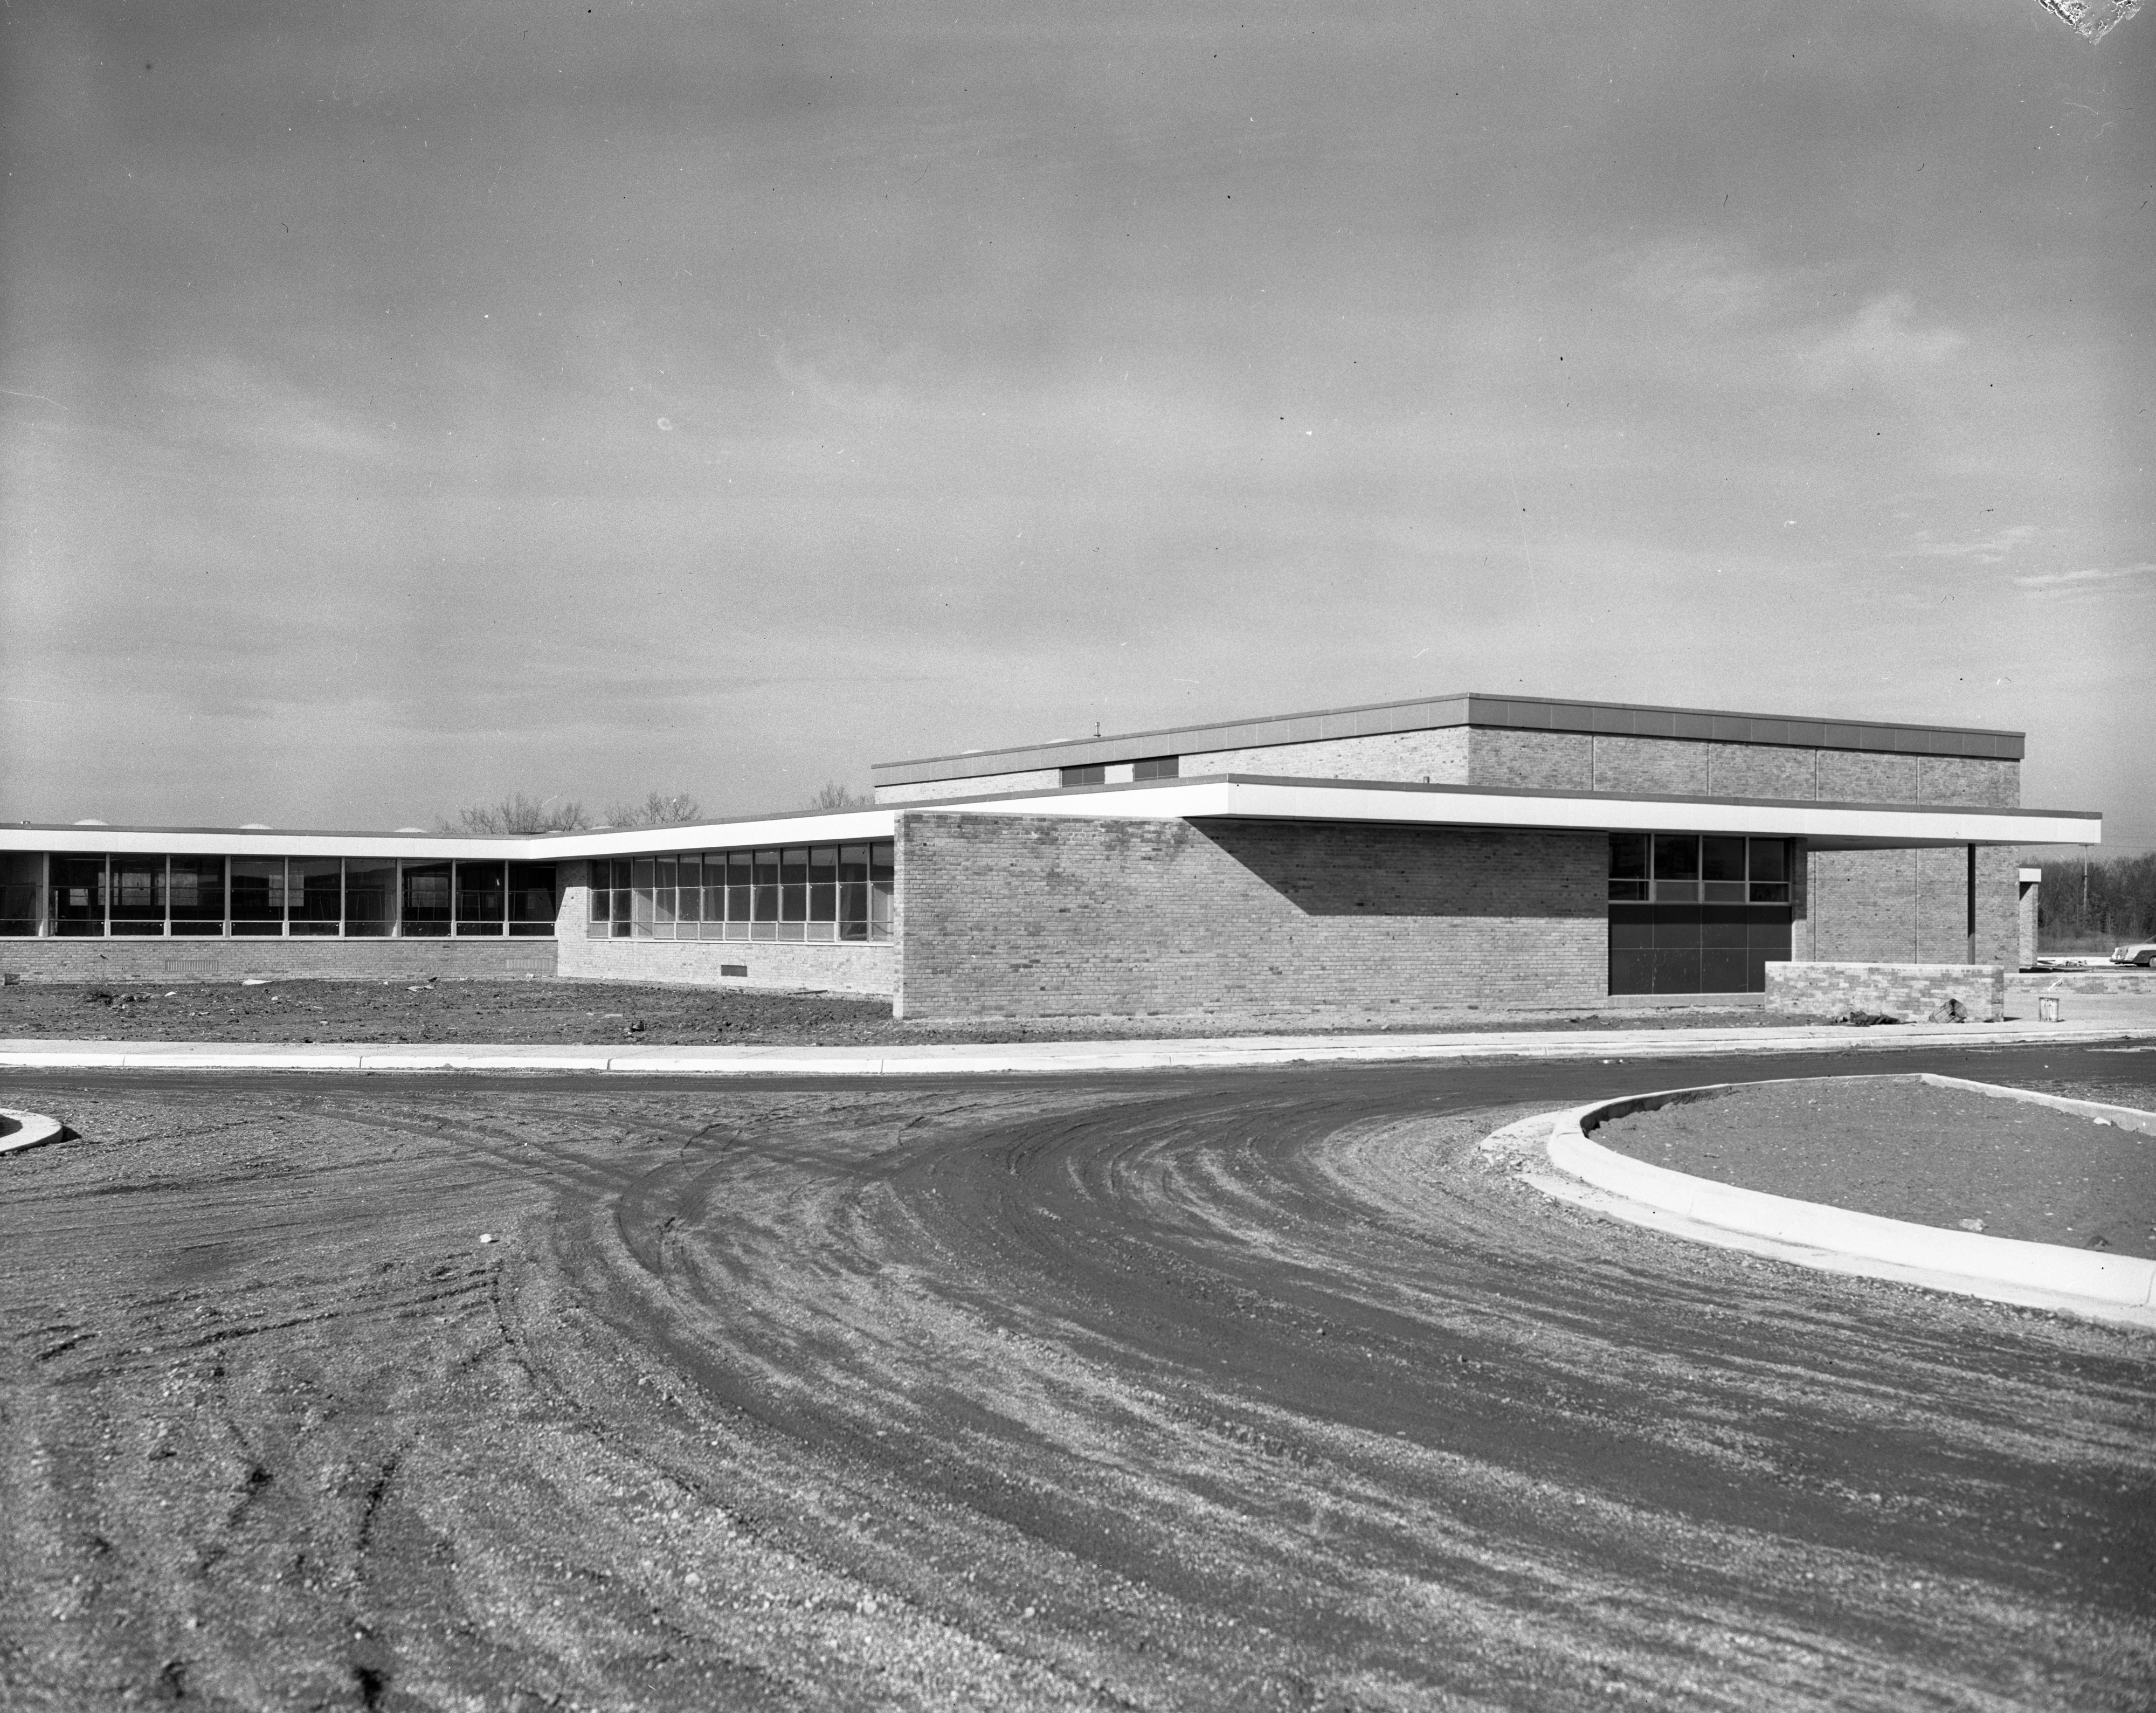 Nearly Completed Wines Elementary School On Newport Road, March 1957 image